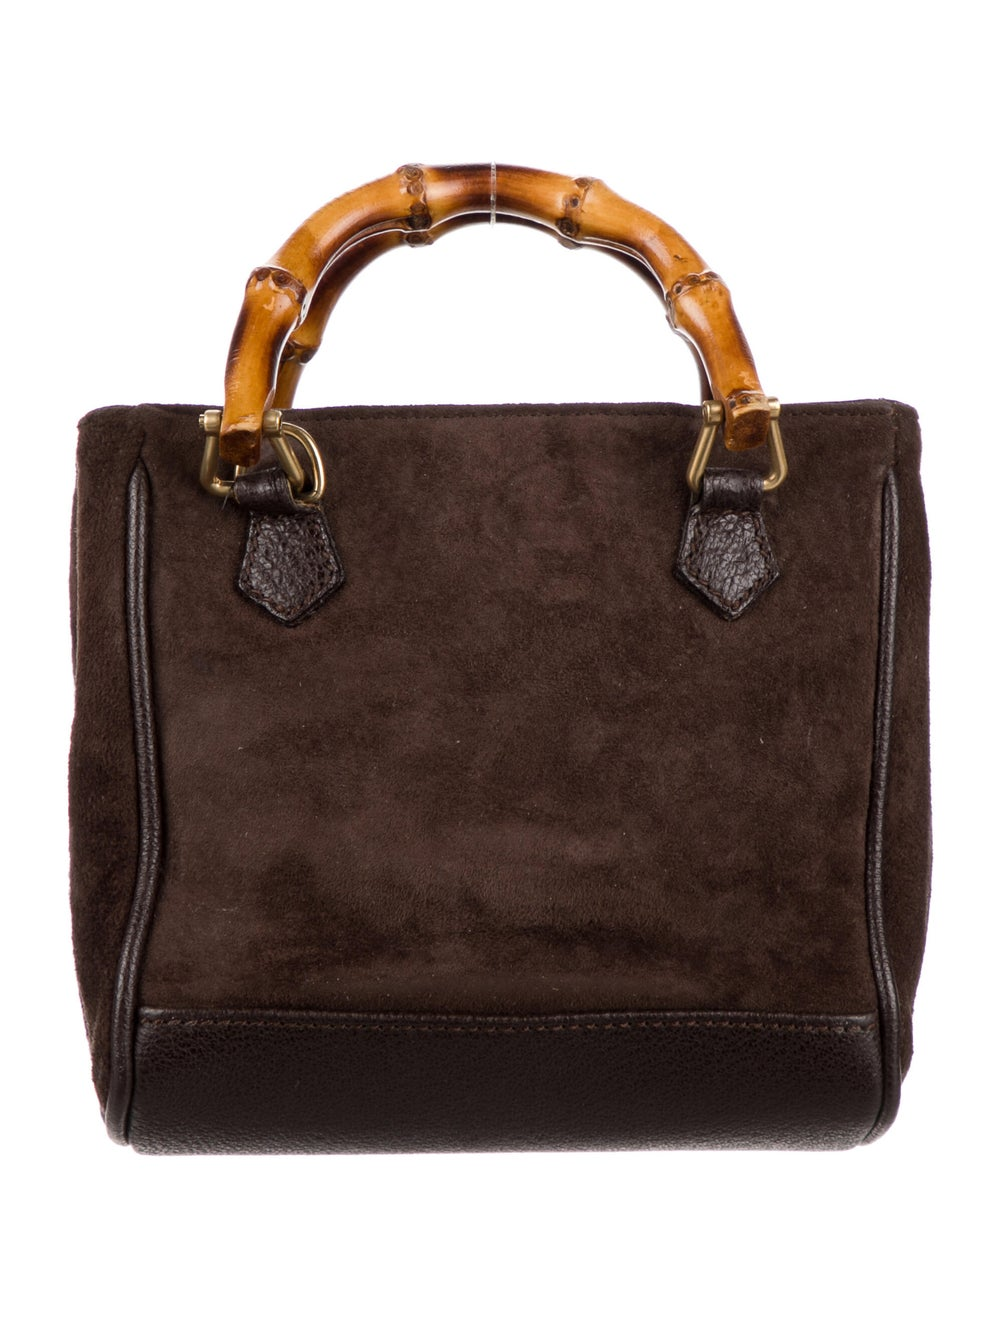 Gucci Vintage Bamboo Mini Suede Diana Bag Brown - image 4